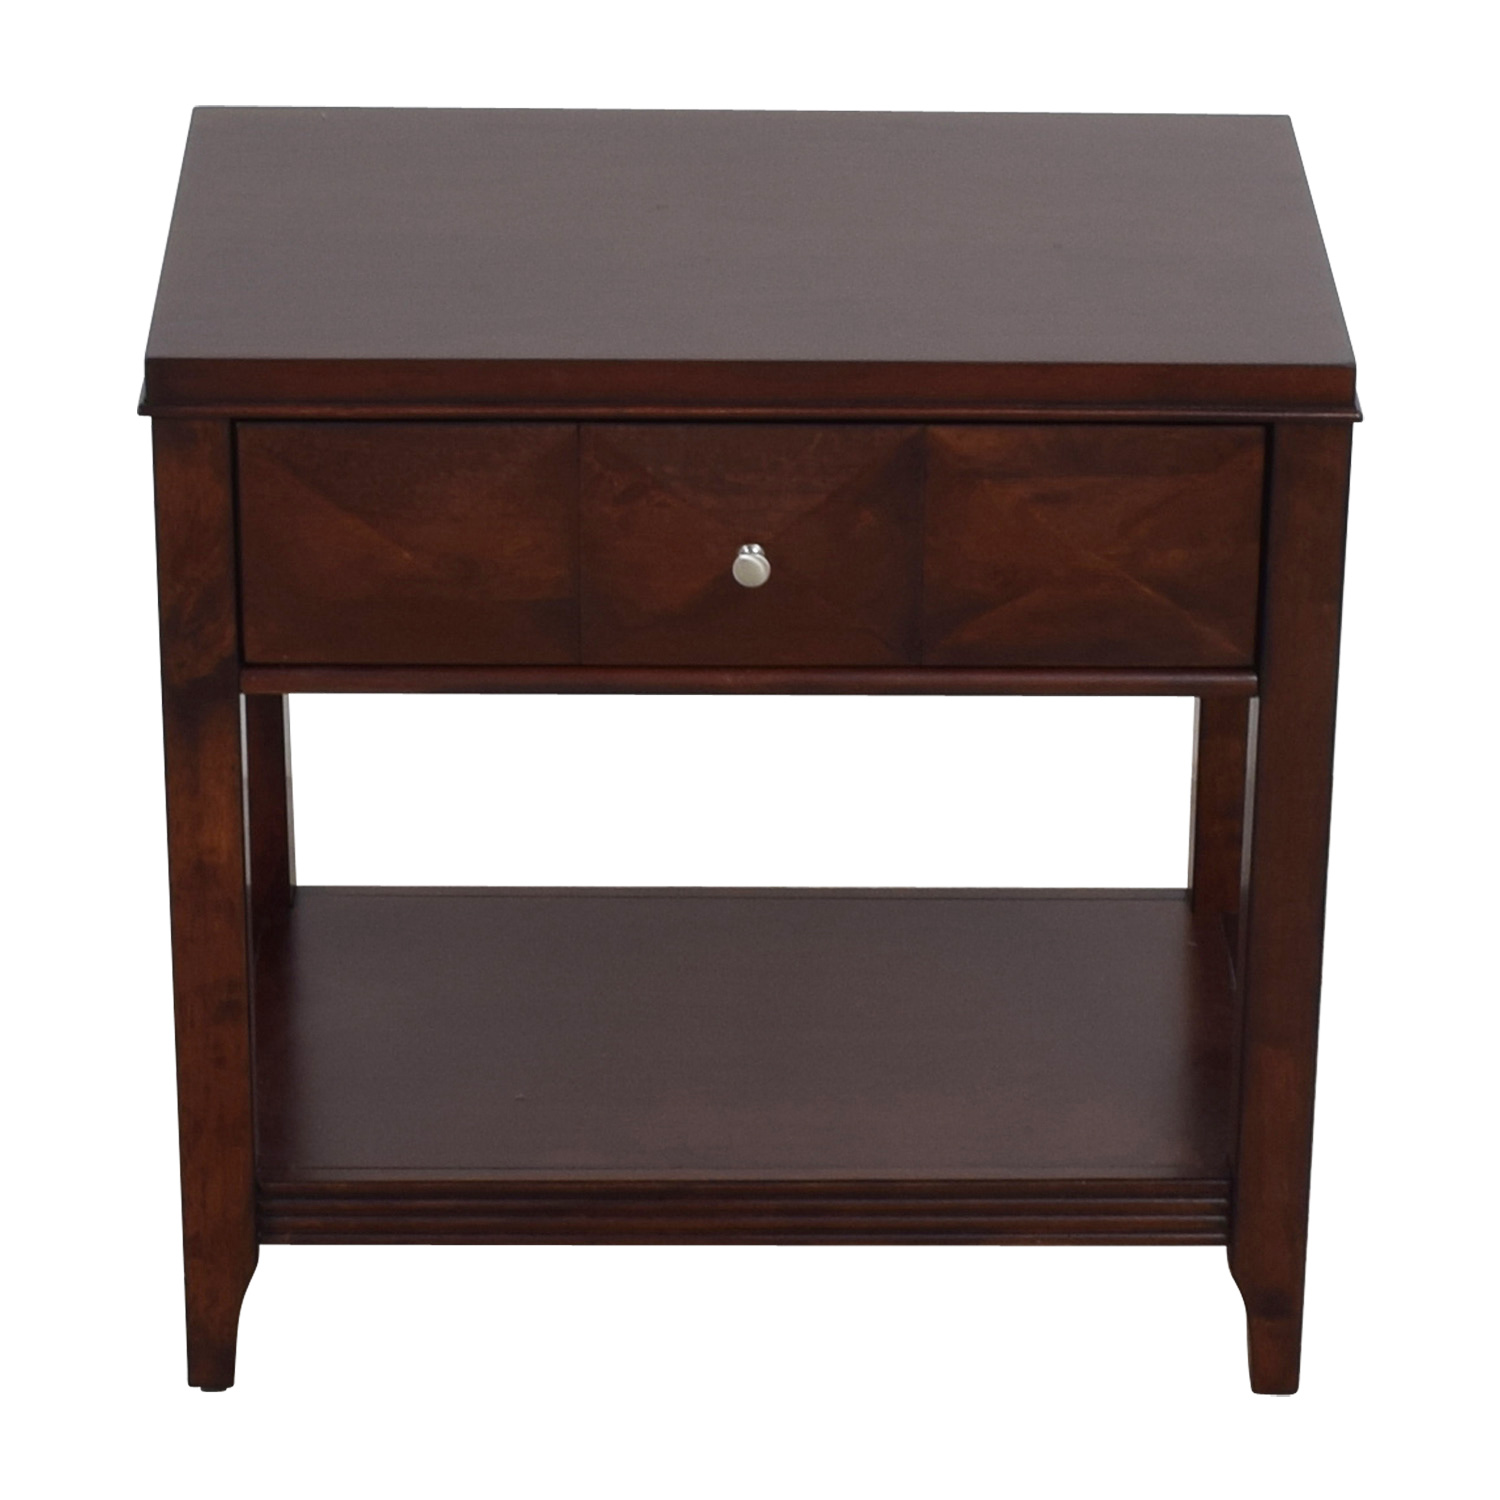 Raymour & Flanigan Shadow Expresso Single Drawer Nightstand / End Tables